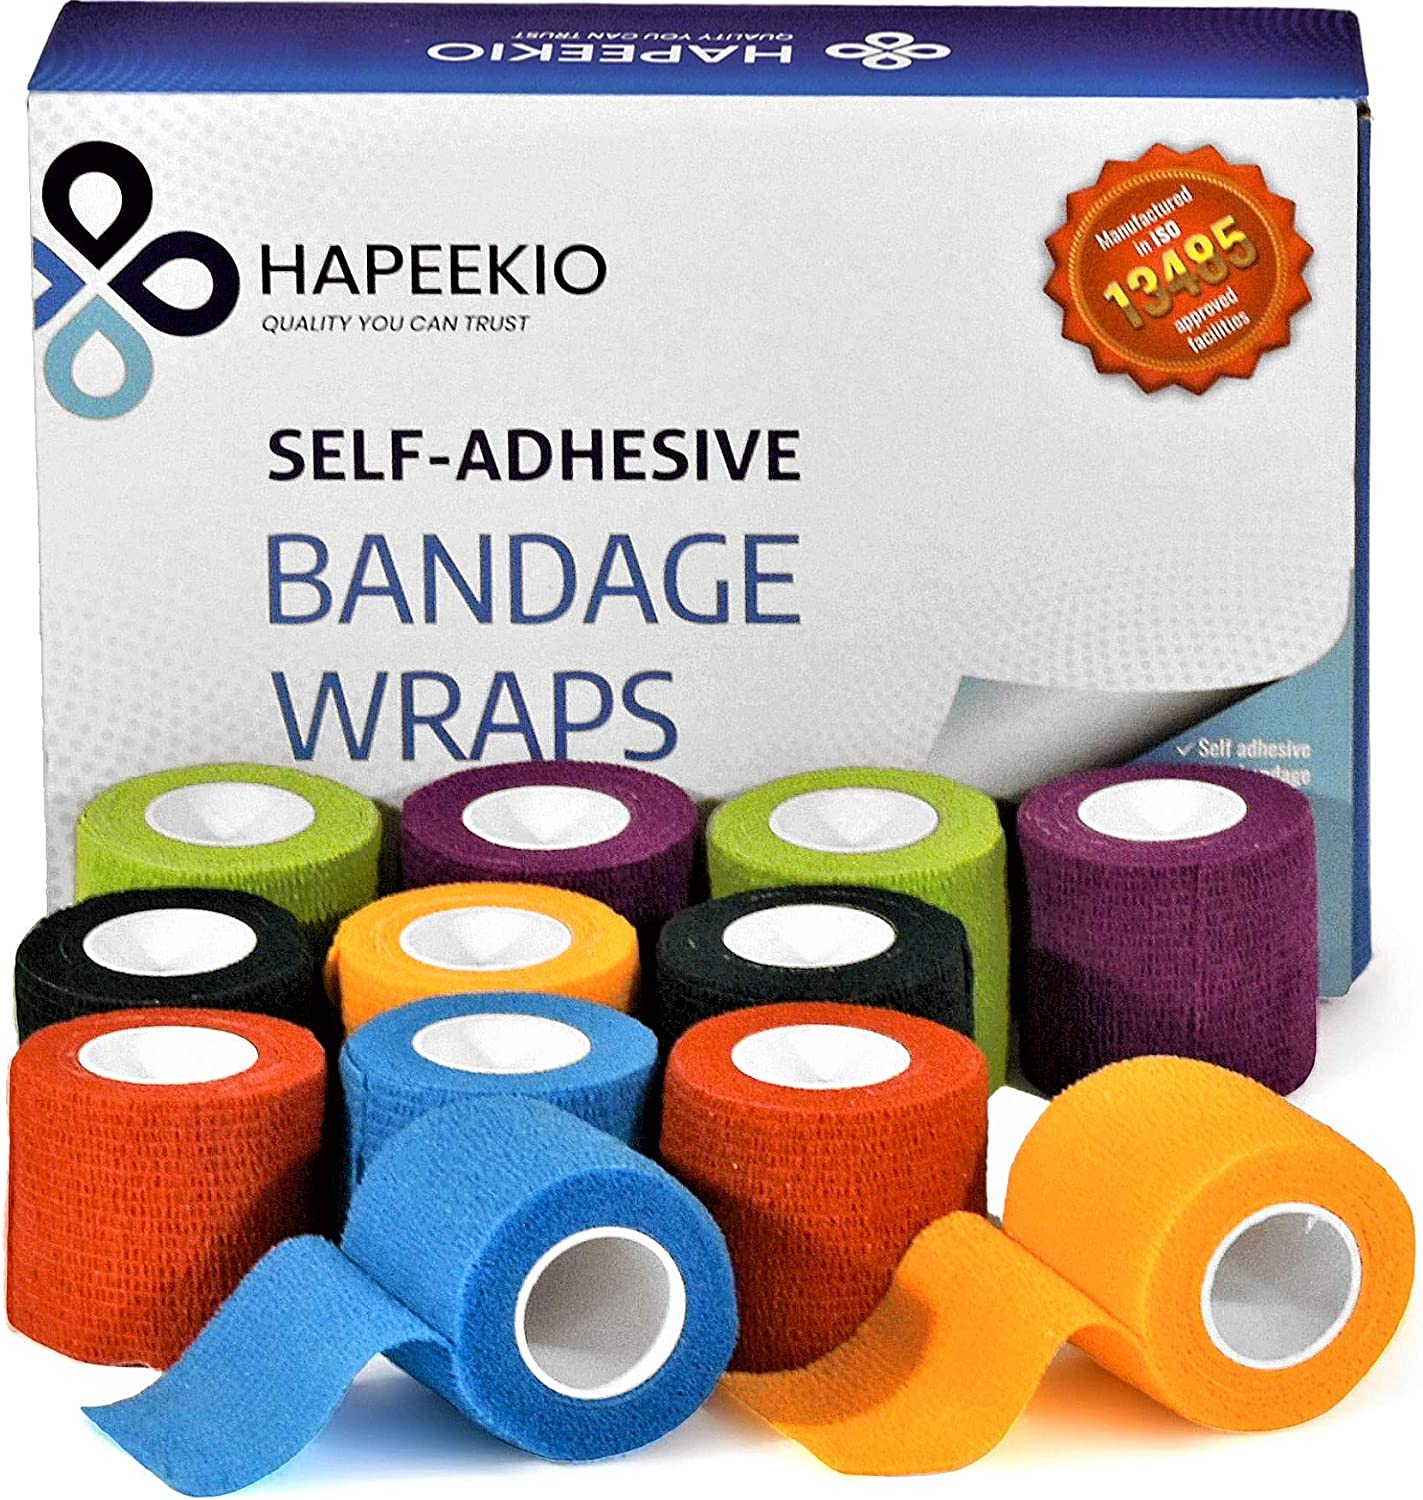 Self Adhesive Cohesive Bandage - Medical Tap - Vet Wrap - Elastic, Breathable, Non-Woven - 6 Beautiful Colors - Athletic Tape for Sports, Injuries, Treatments and Recovery - 12 Pack / 2 Inch x 5 Feet